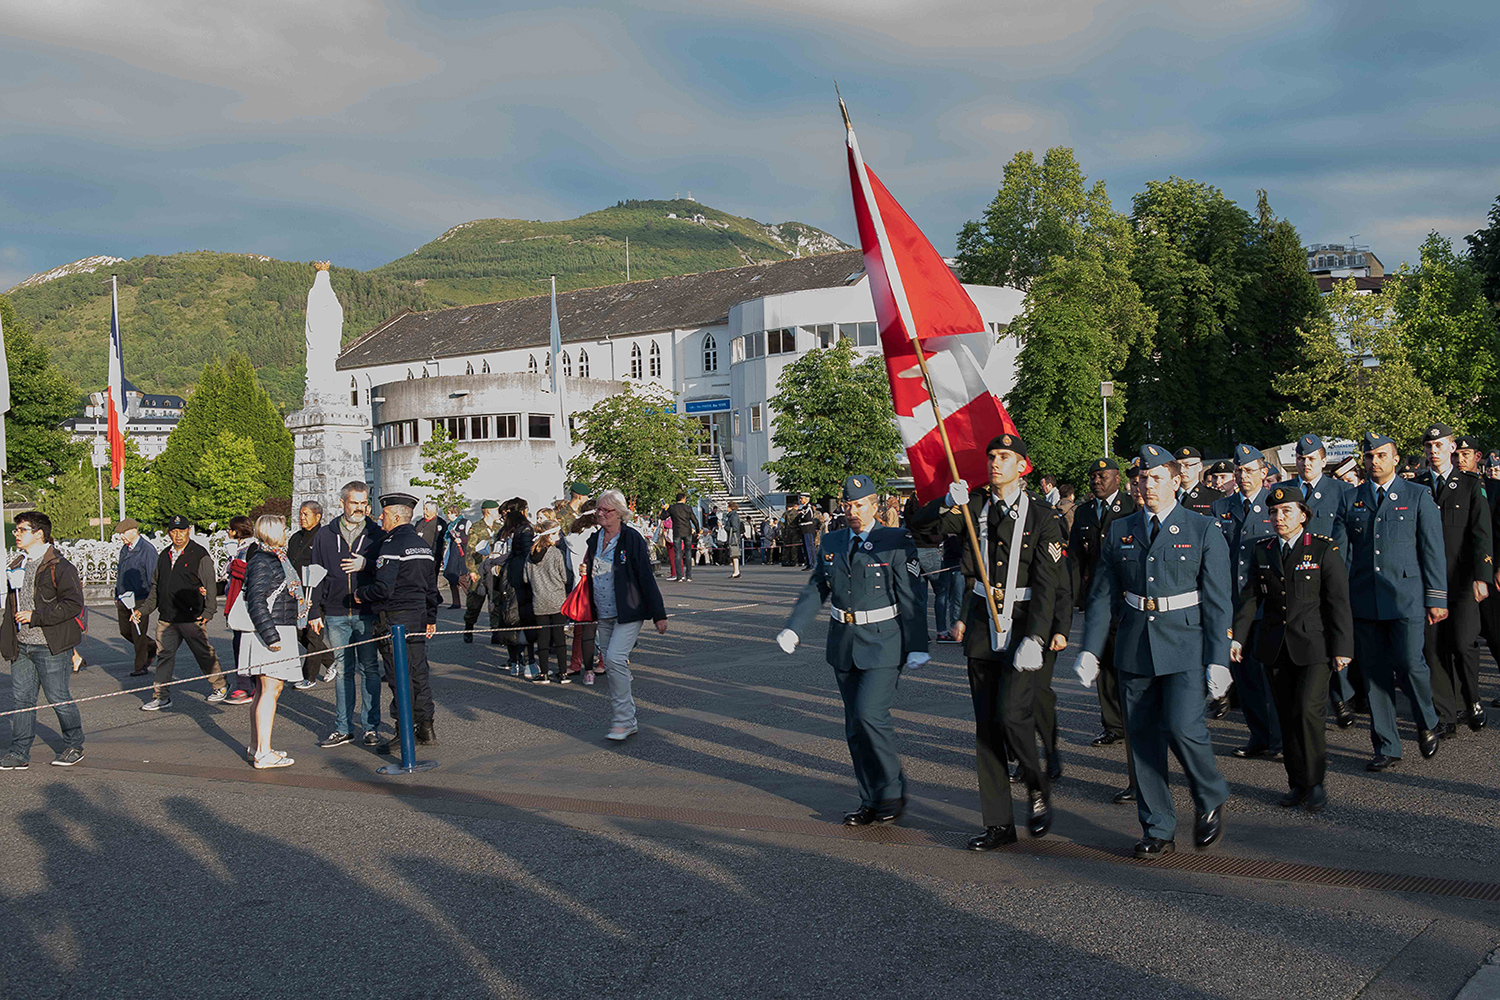 "The Canadian Armed Forces Contingent parades in the streets of Lourdes, France towards the Monuments aux Morts war memorial during the International Military Pilgrimage on May 20, 2017. Photo: Sergeant Dwayne ""George"" Janes, Army Public Affairs. ©2017 DND/MDN Canada."